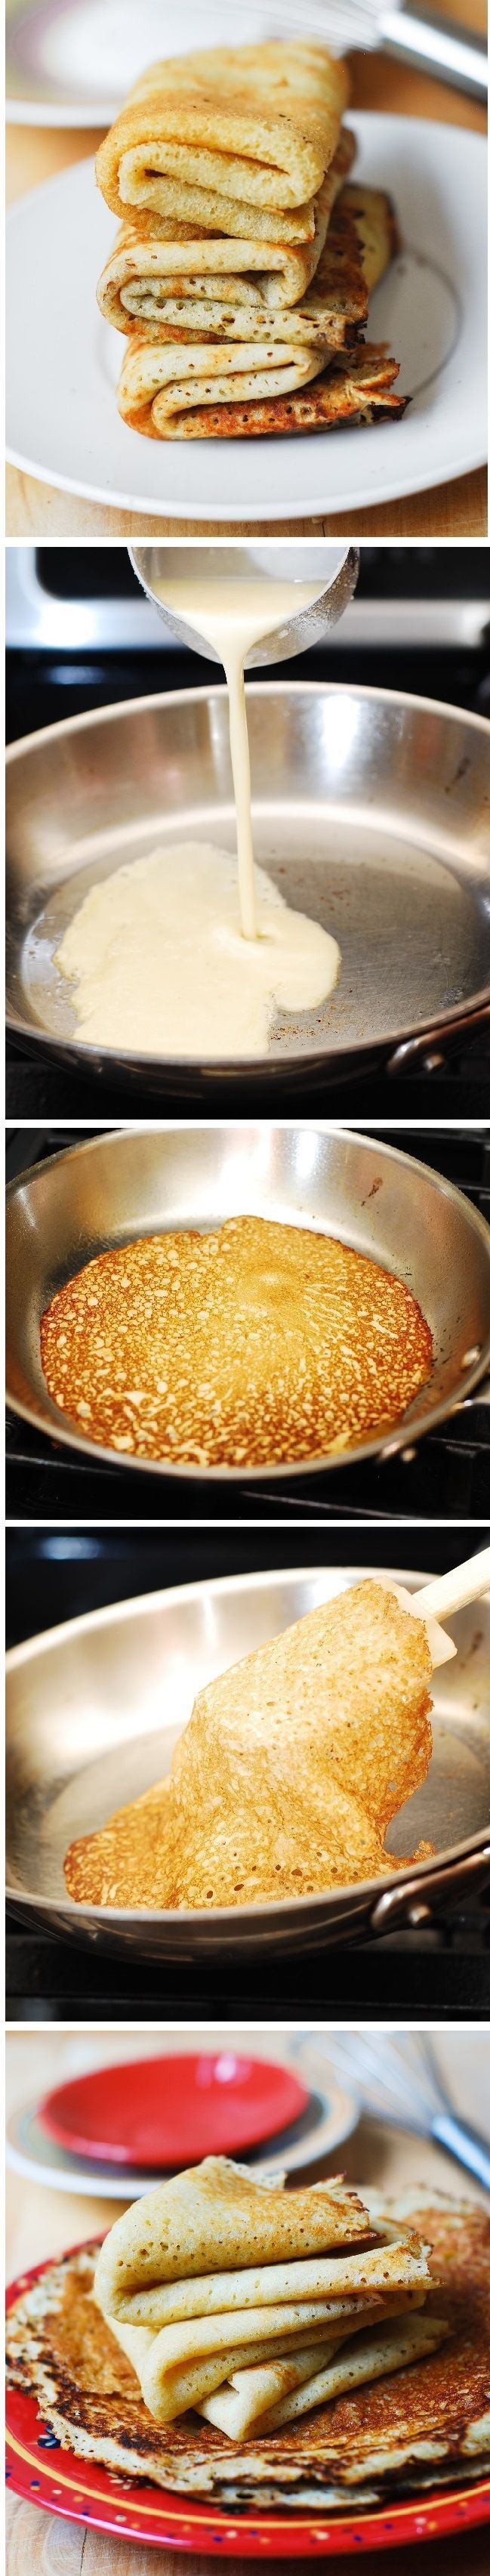 Step-by-step photos and instructions - How to make gluten free crepes from scratch using your favorite gluten free flour blend (homemade or store-bought) or gluten free waffle/pancake mix. They taste and look just like regular crepes! Dairy free and wheat free